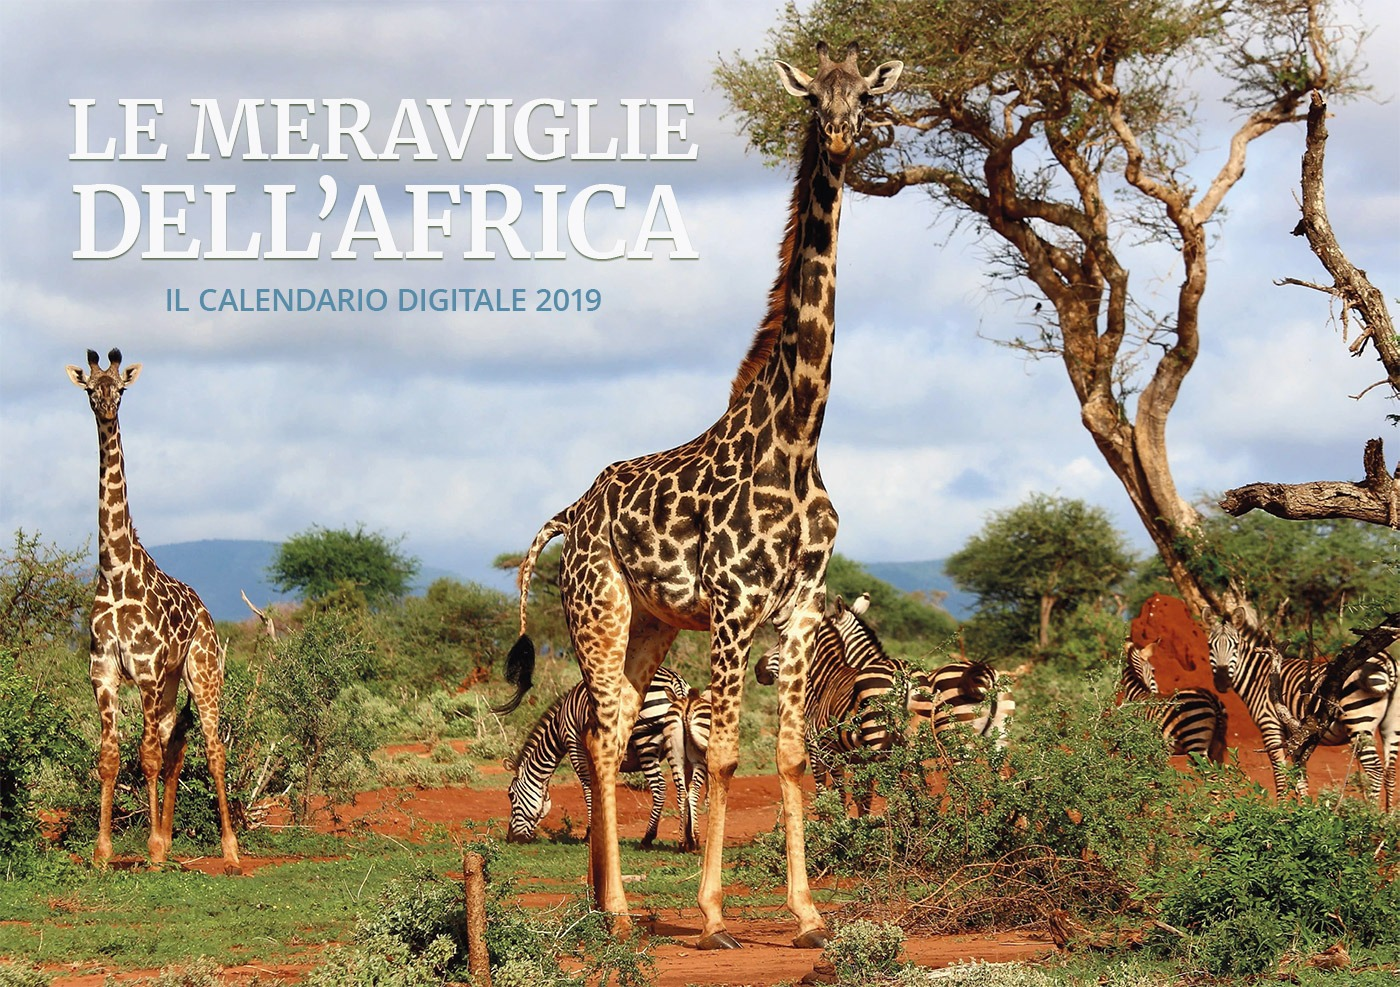 FdS - Le meraviglie dell'africa 2019